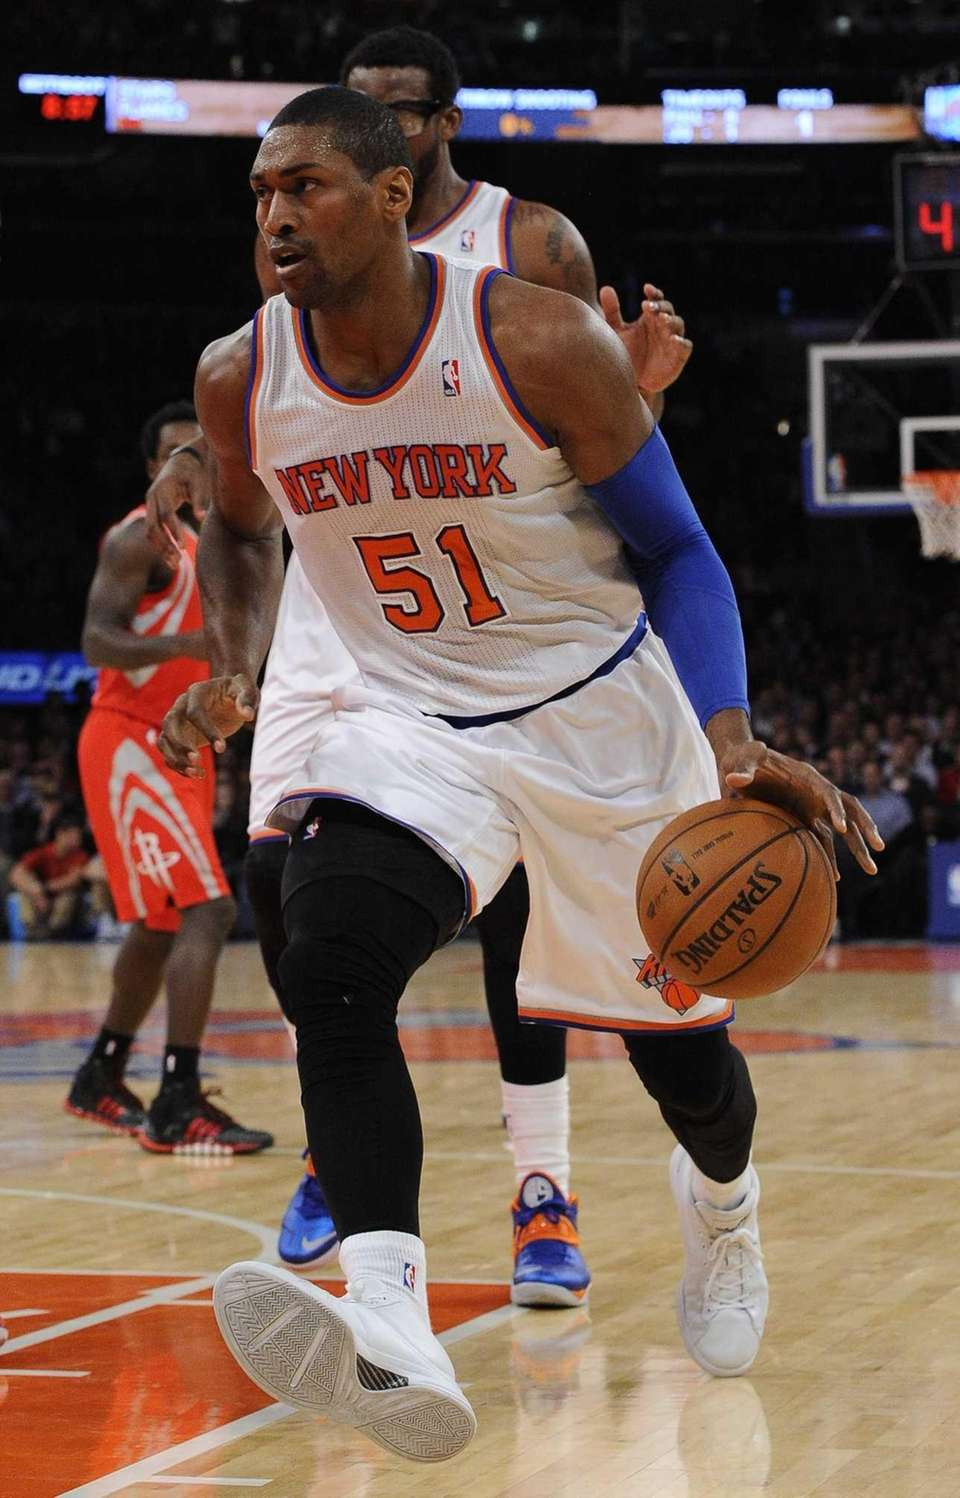 Knicks forward Metta World Peace drives the basketball